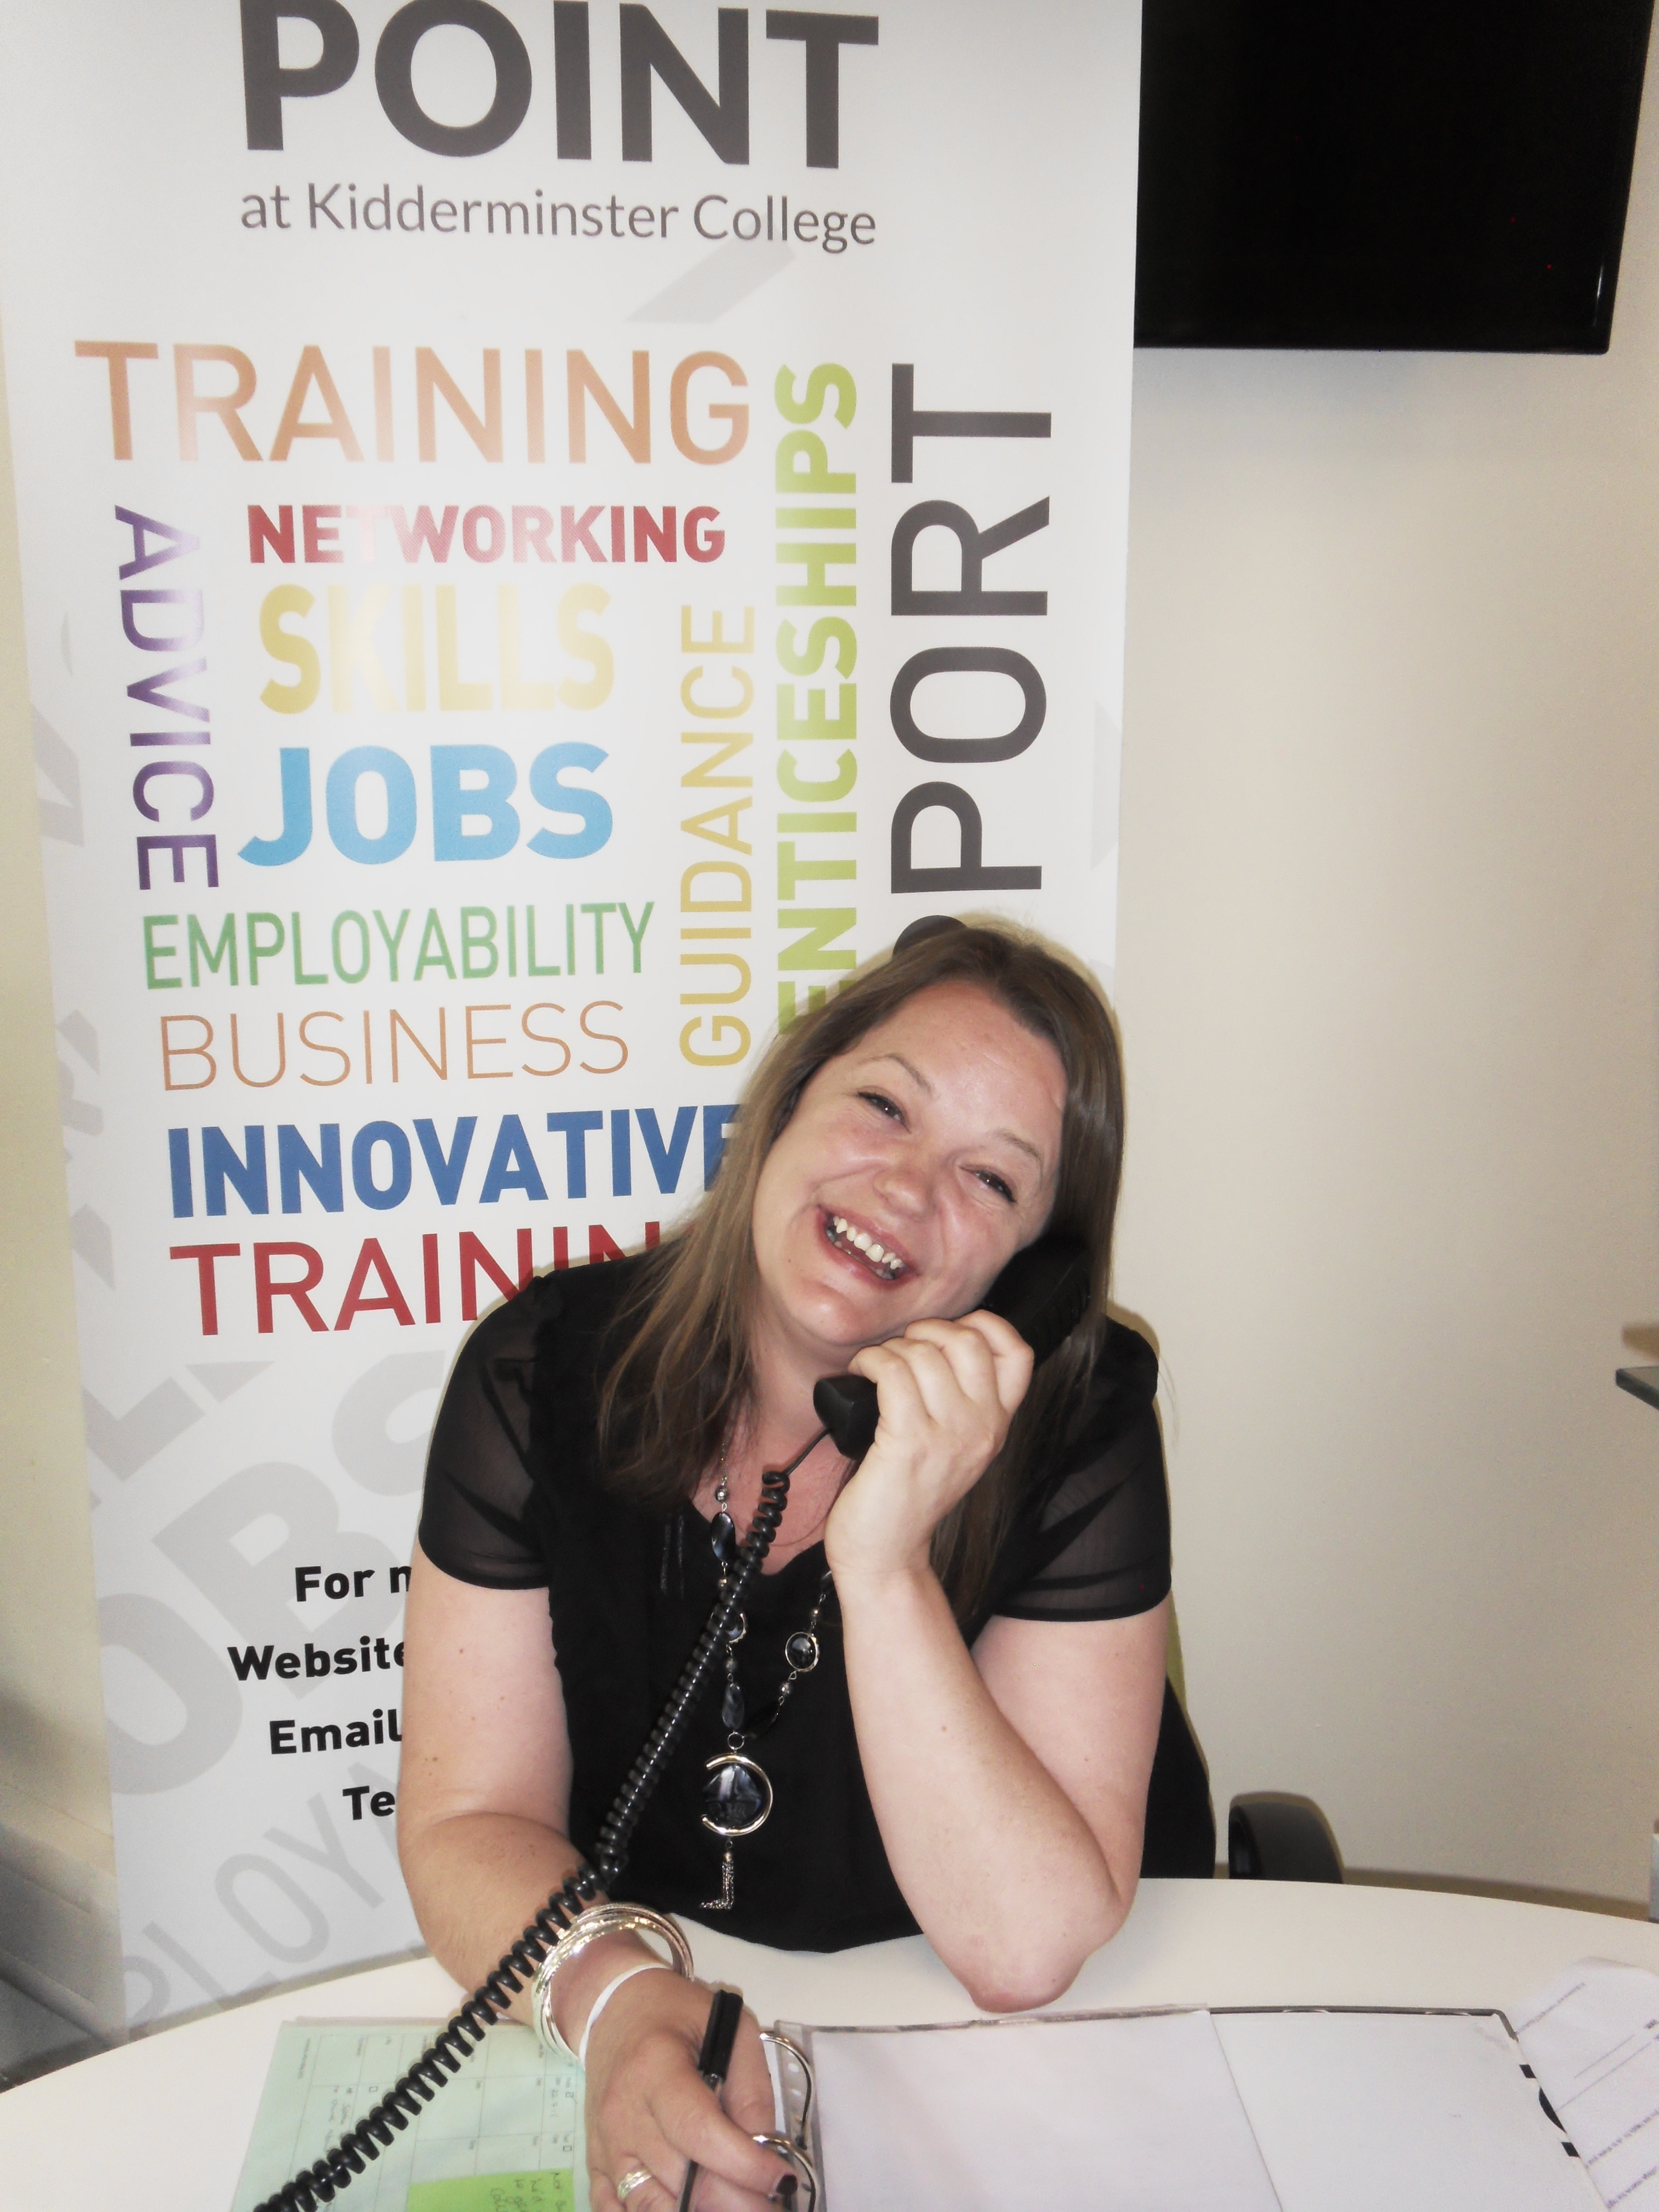 Tara Branagh joined an Employability Programme at the Point